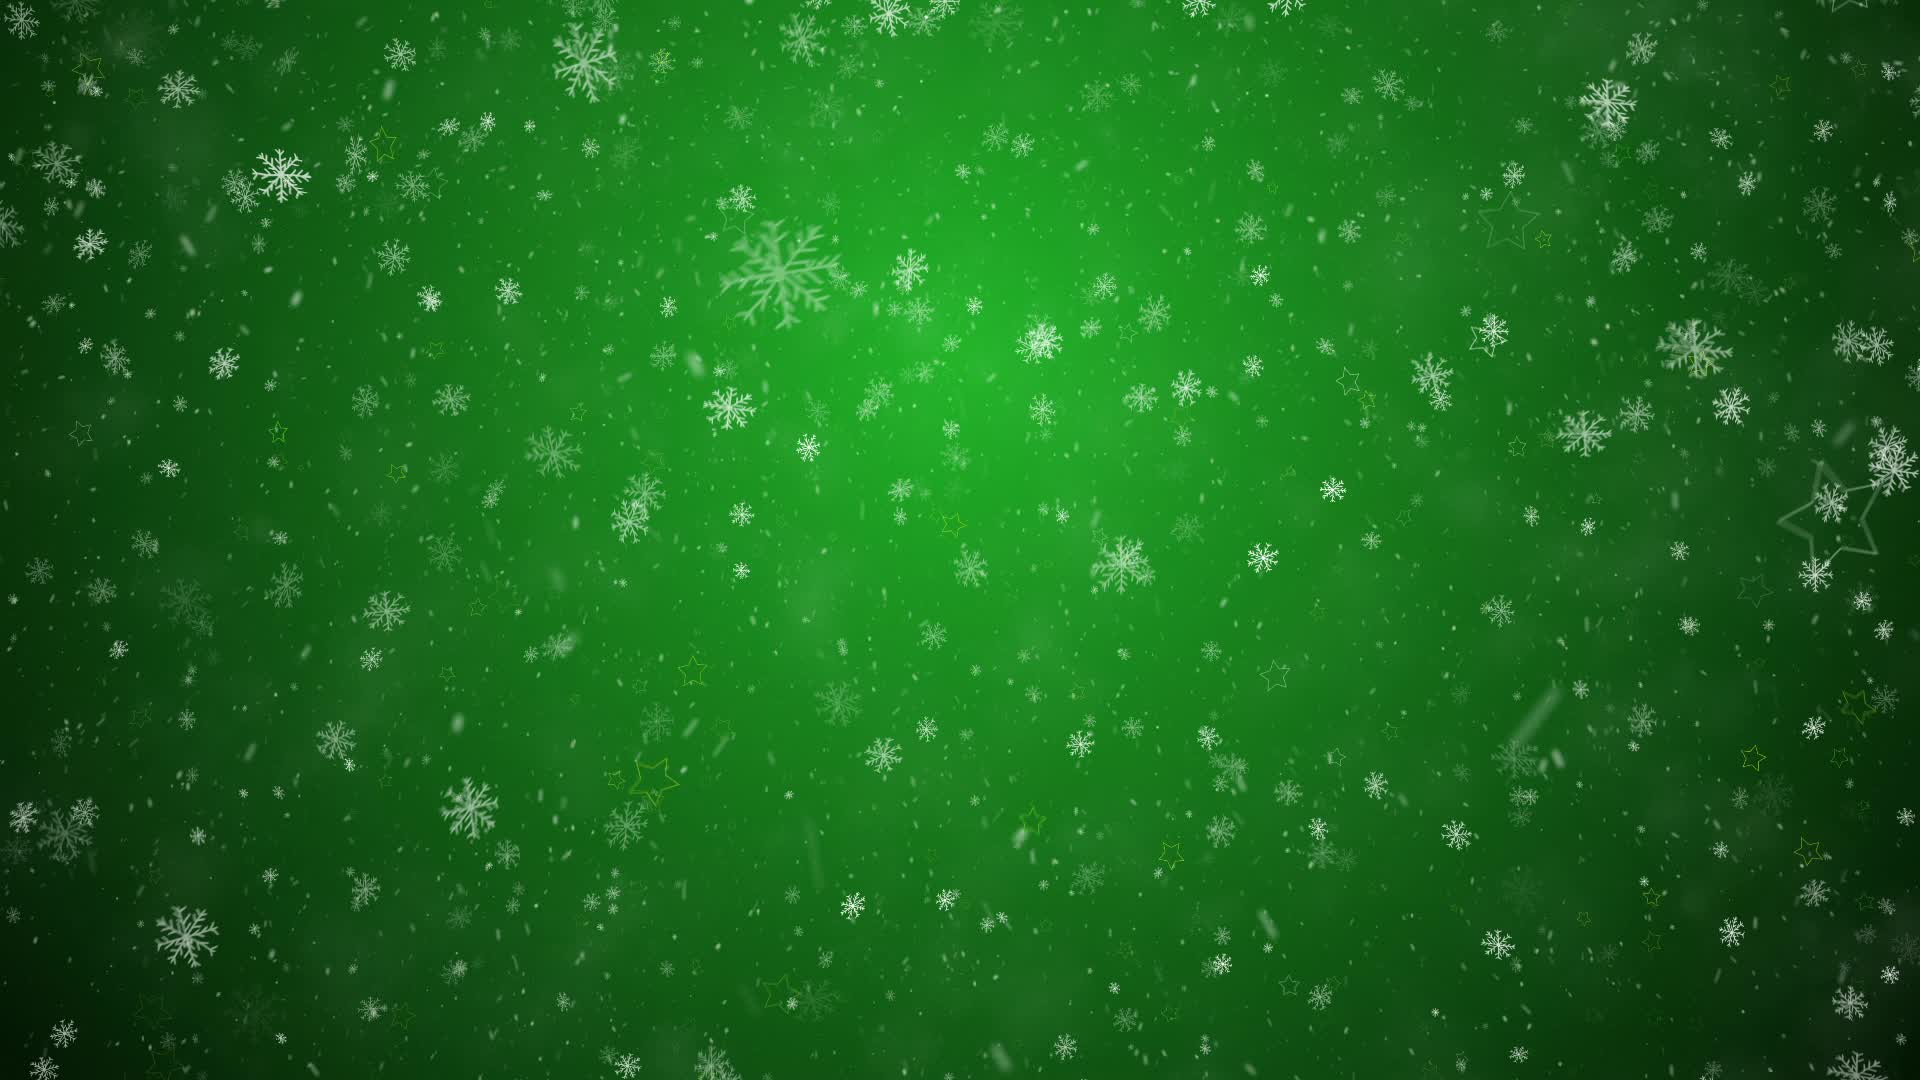 Falling Snowflakes And Stars On A Green Background Stock ...